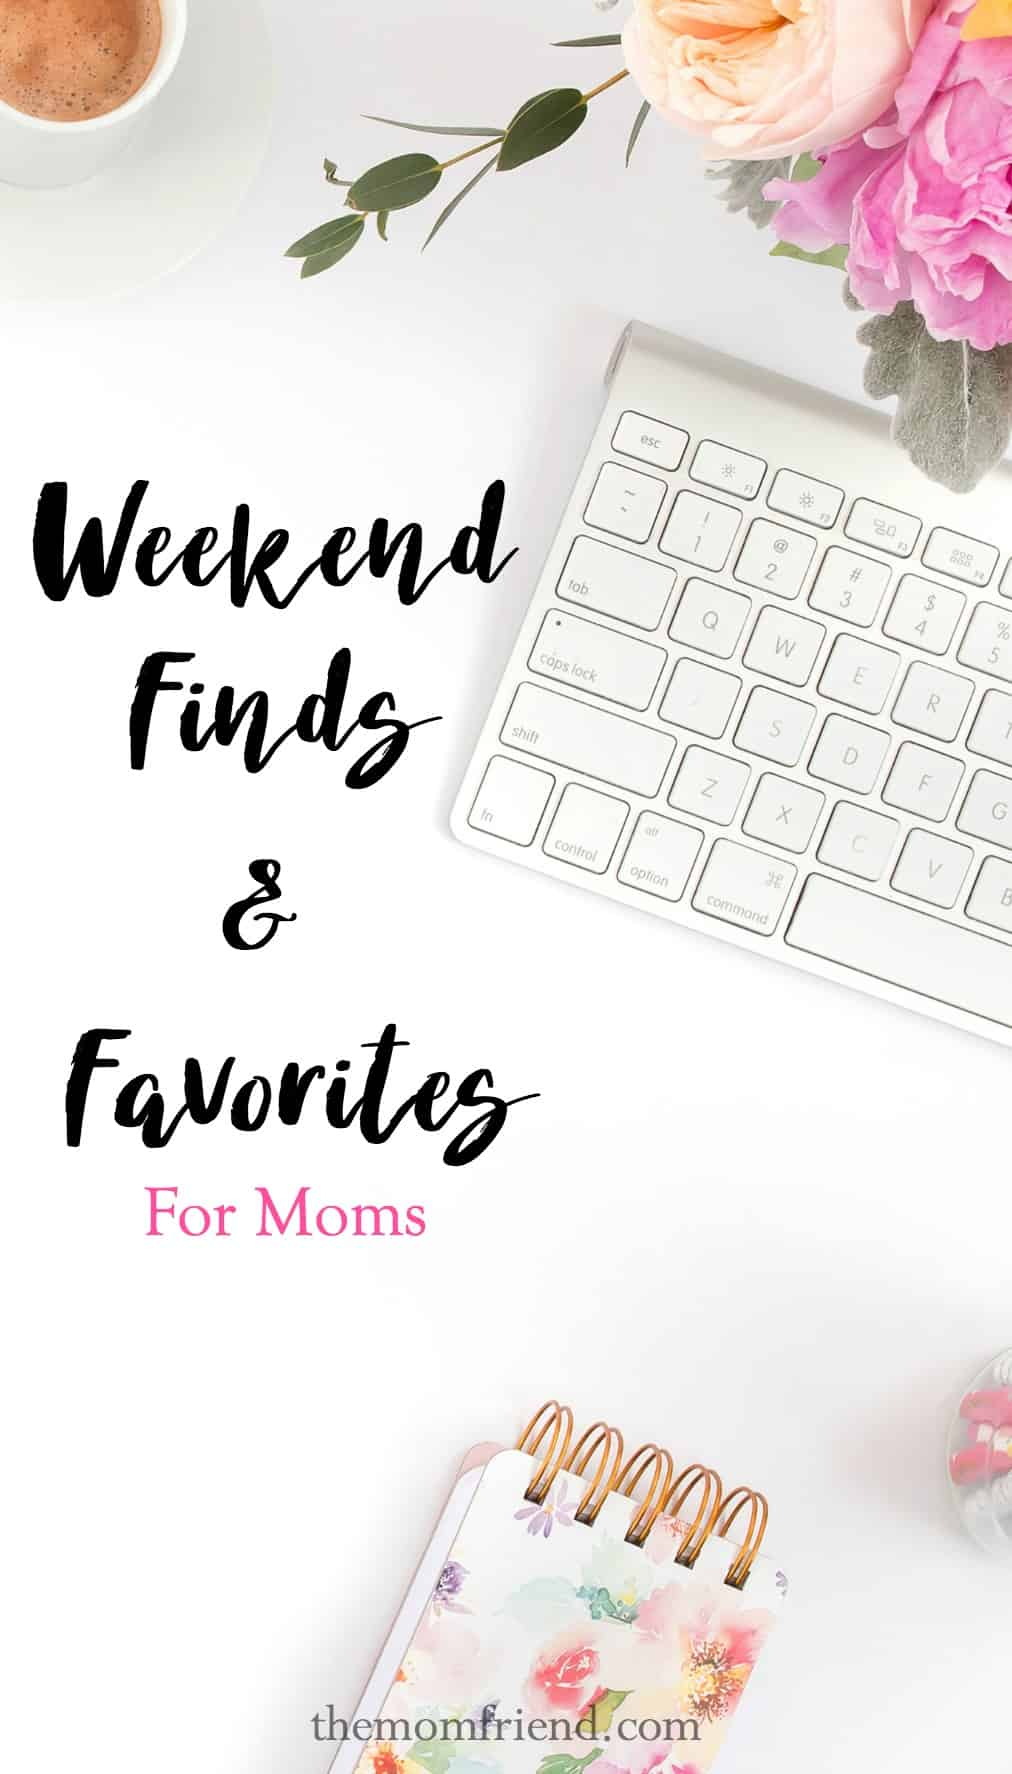 Pinnable image for Weekend Finds and Favorites for Moms.